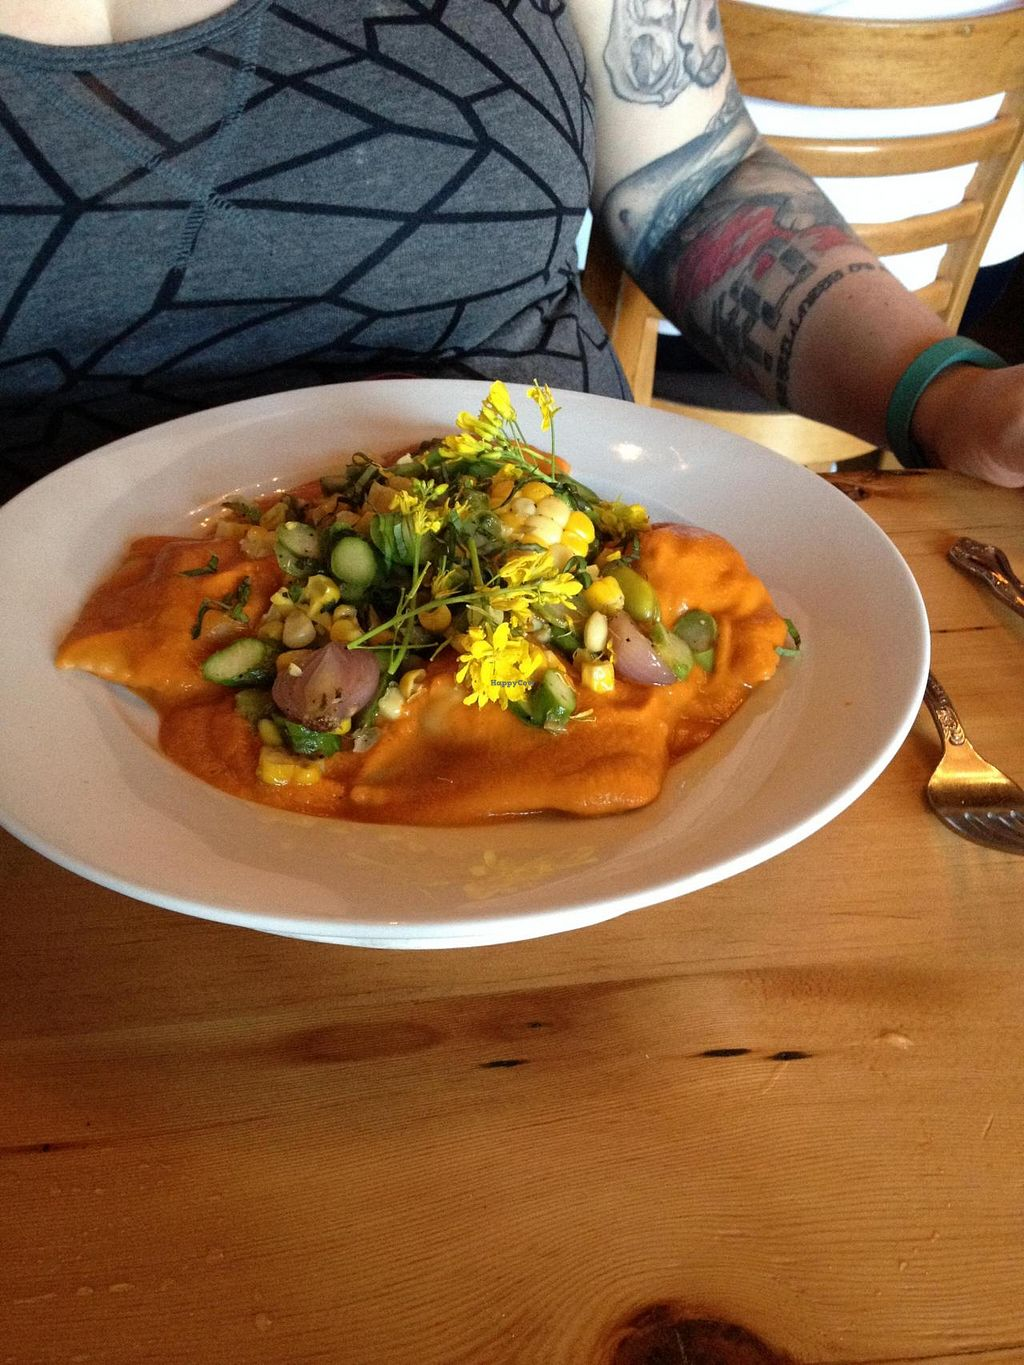 "Photo of CLOSED: Portobello Vegan Trattoria  by <a href=""/members/profile/Posi%20Britt"">Posi Britt</a> <br/>Butternut squash ravioli! <br/> June 25, 2014  - <a href='/contact/abuse/image/17009/72763'>Report</a>"